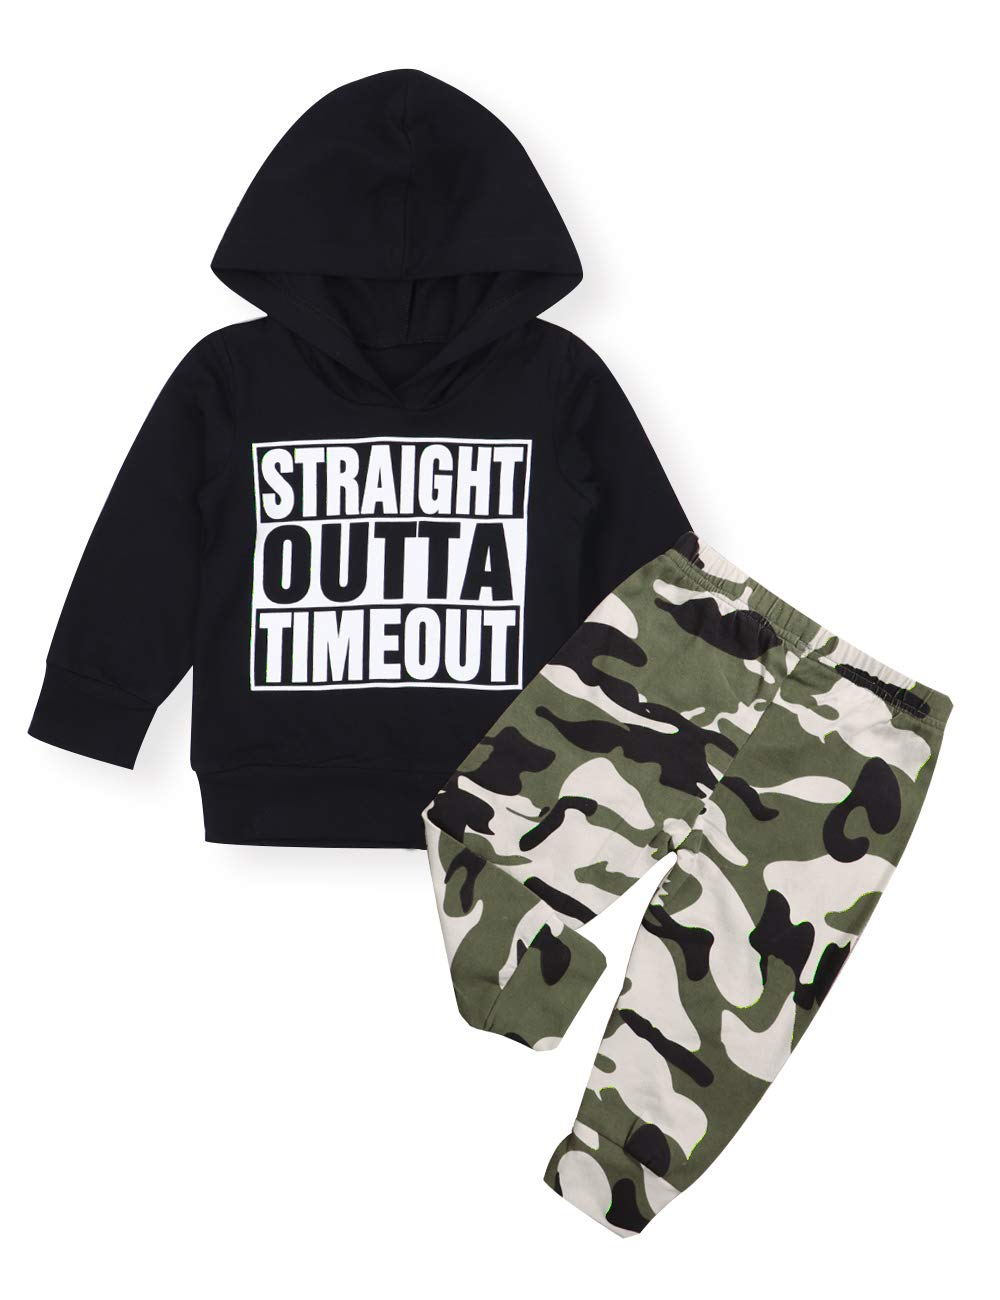 Toddler Infant Baby Boy Clothes Letter Print Long Sleeve Hoodie Sweatshirt Camouflage Pants Winter Outfit Set